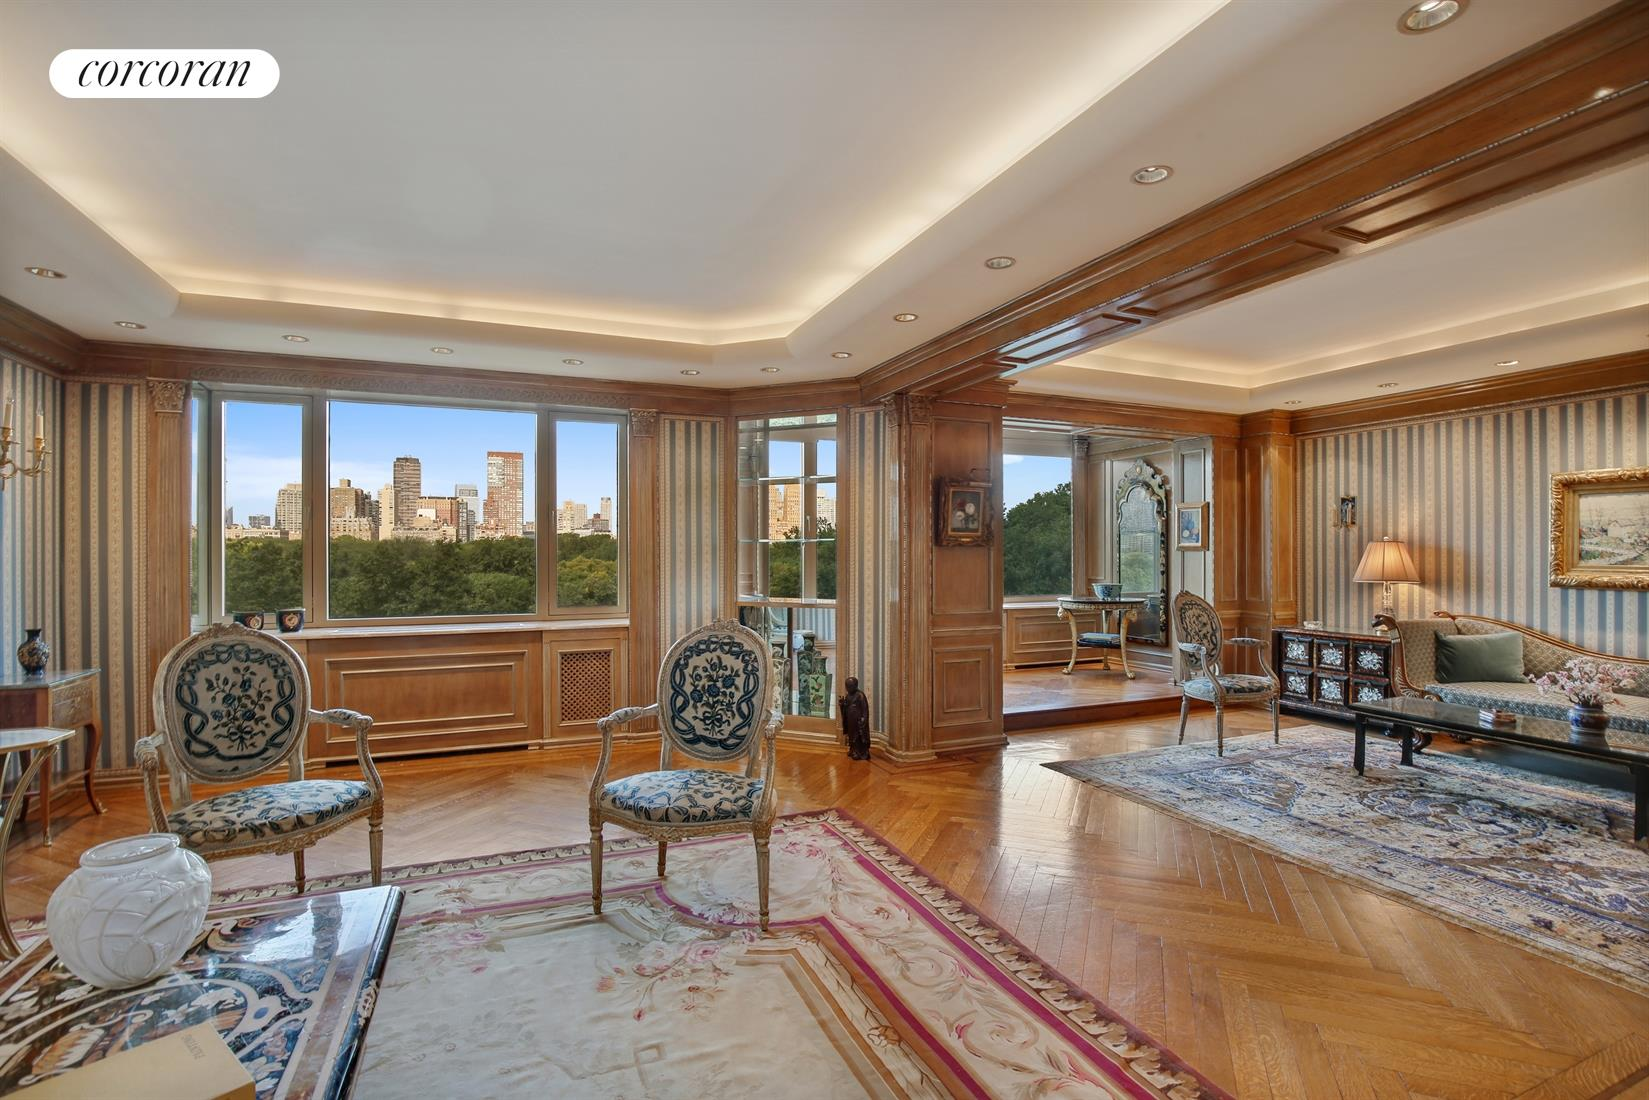 860 Fifth Avenue, 9/10HK, Park Views from EIGHT rooms